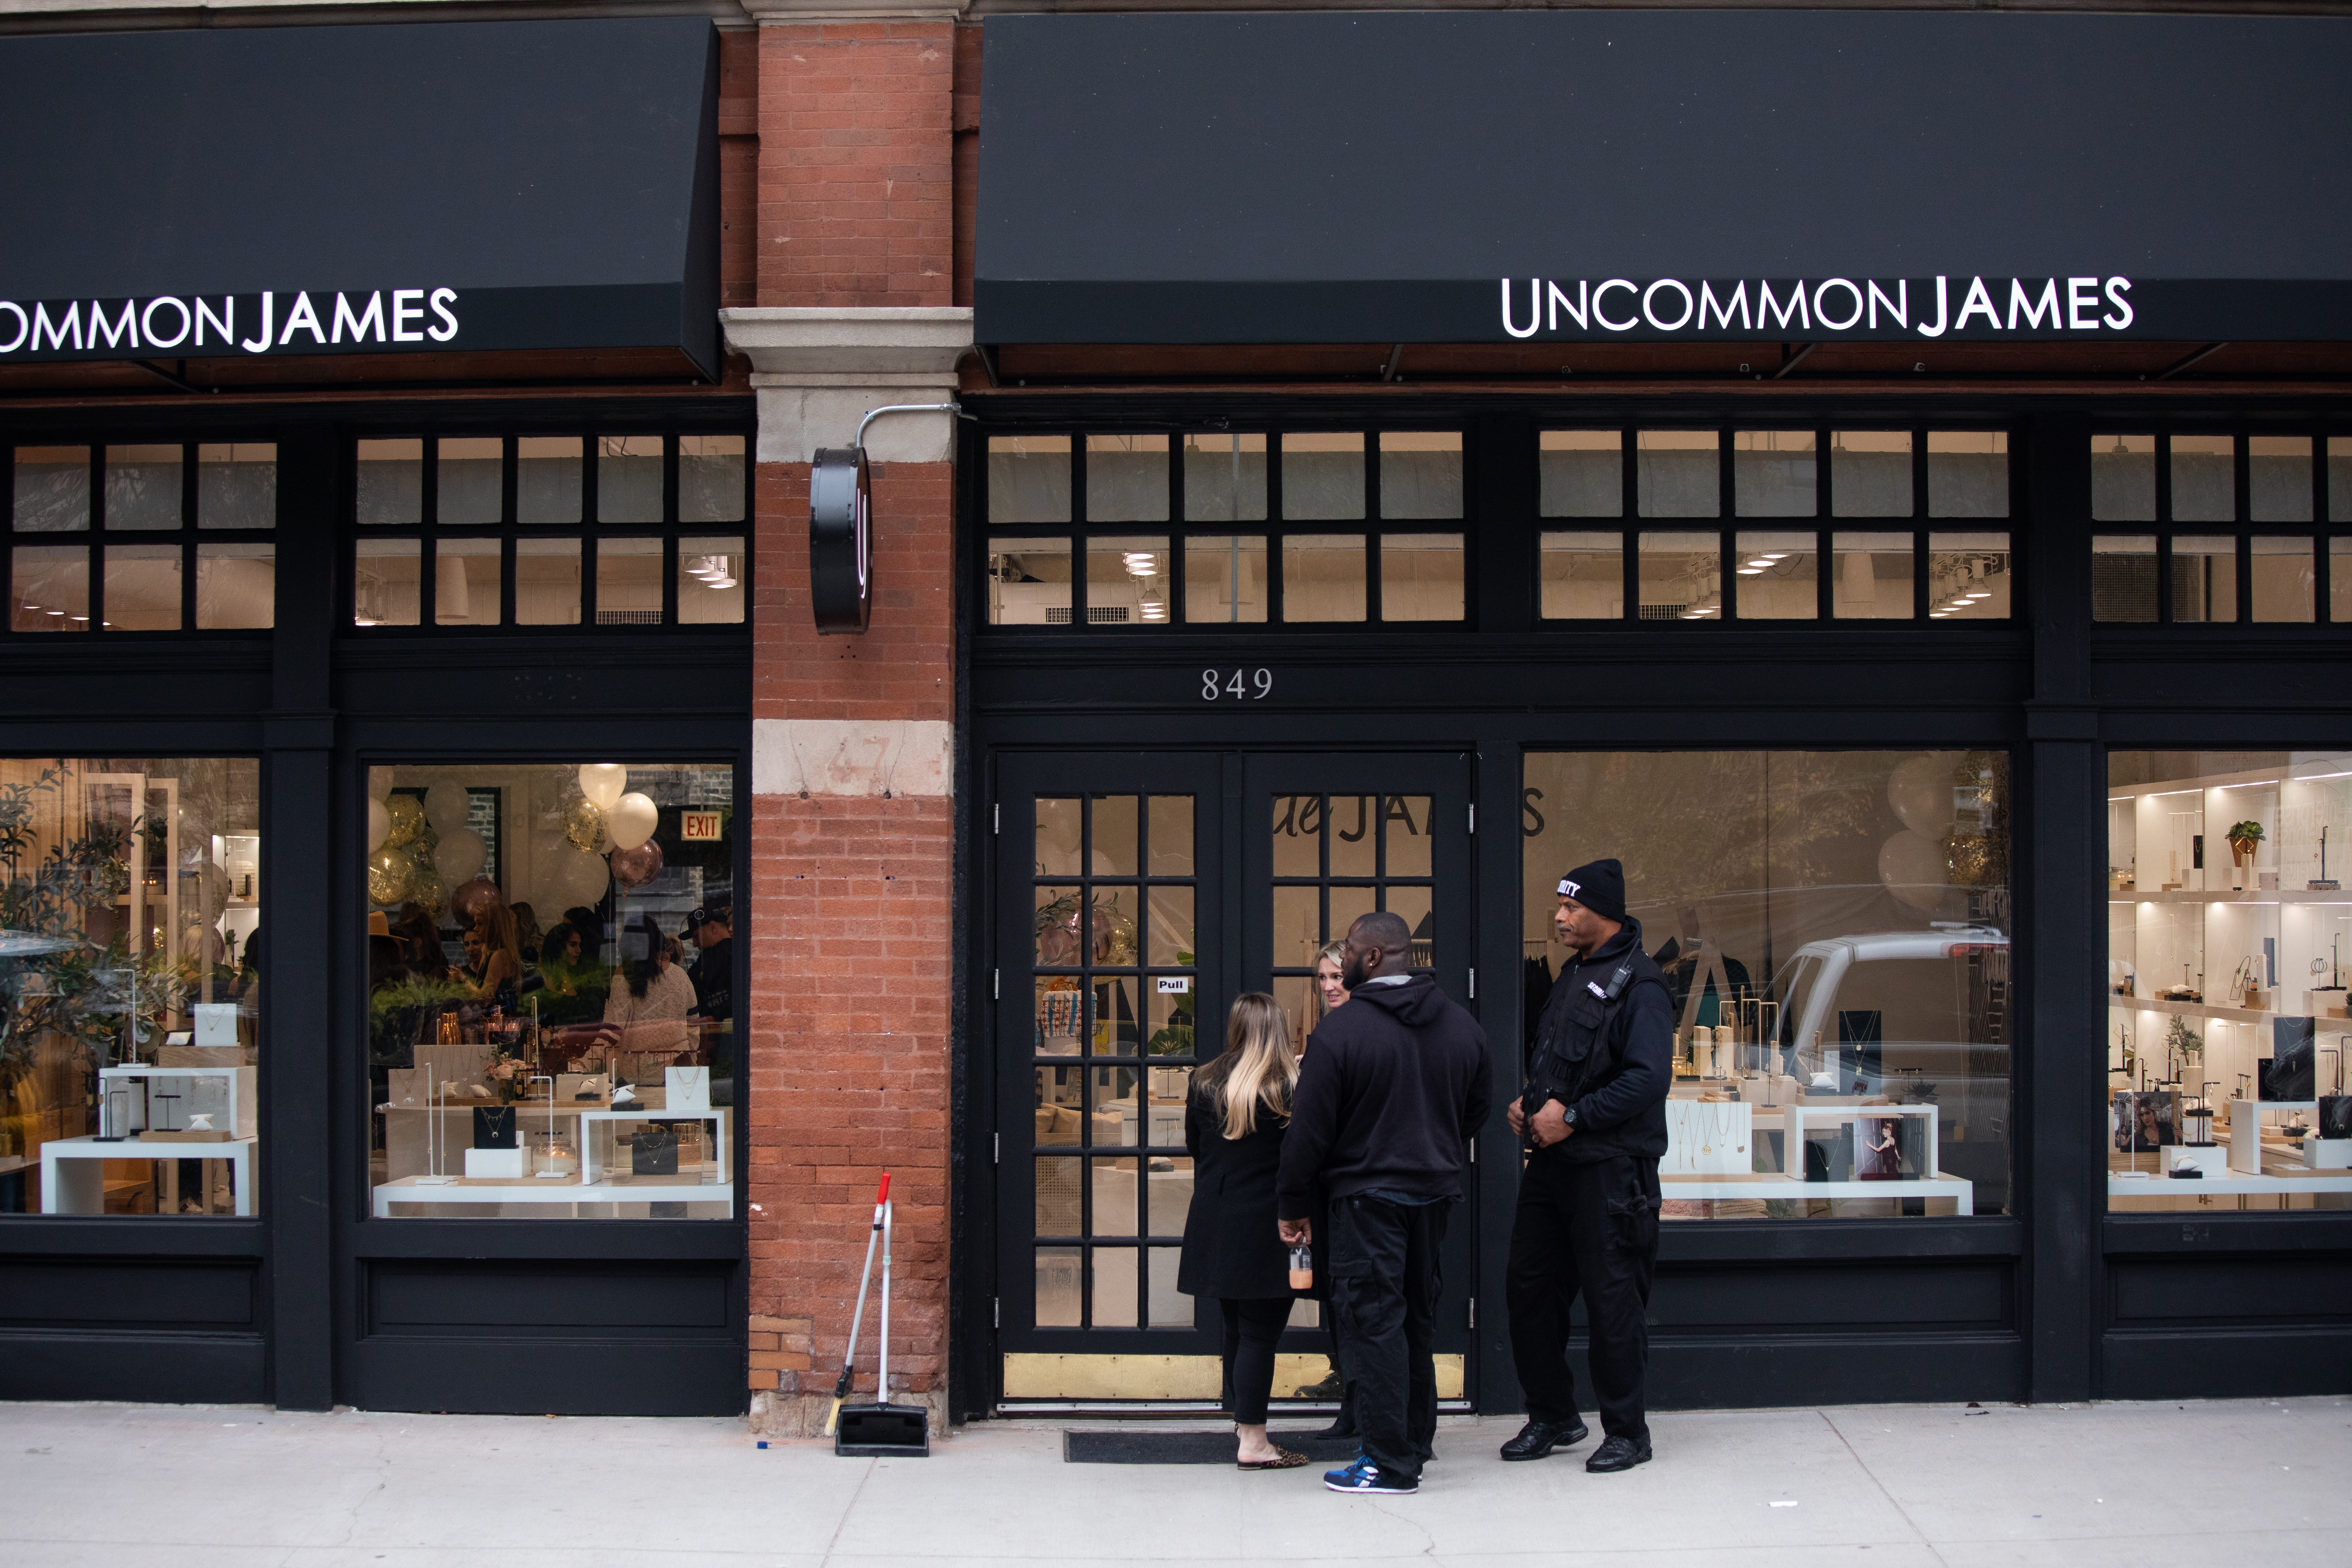 Uncommon James, a jewelry store founded by Kristin Cavallari, is located in the West Loop. | Pat Nabong/For The Sun-Times